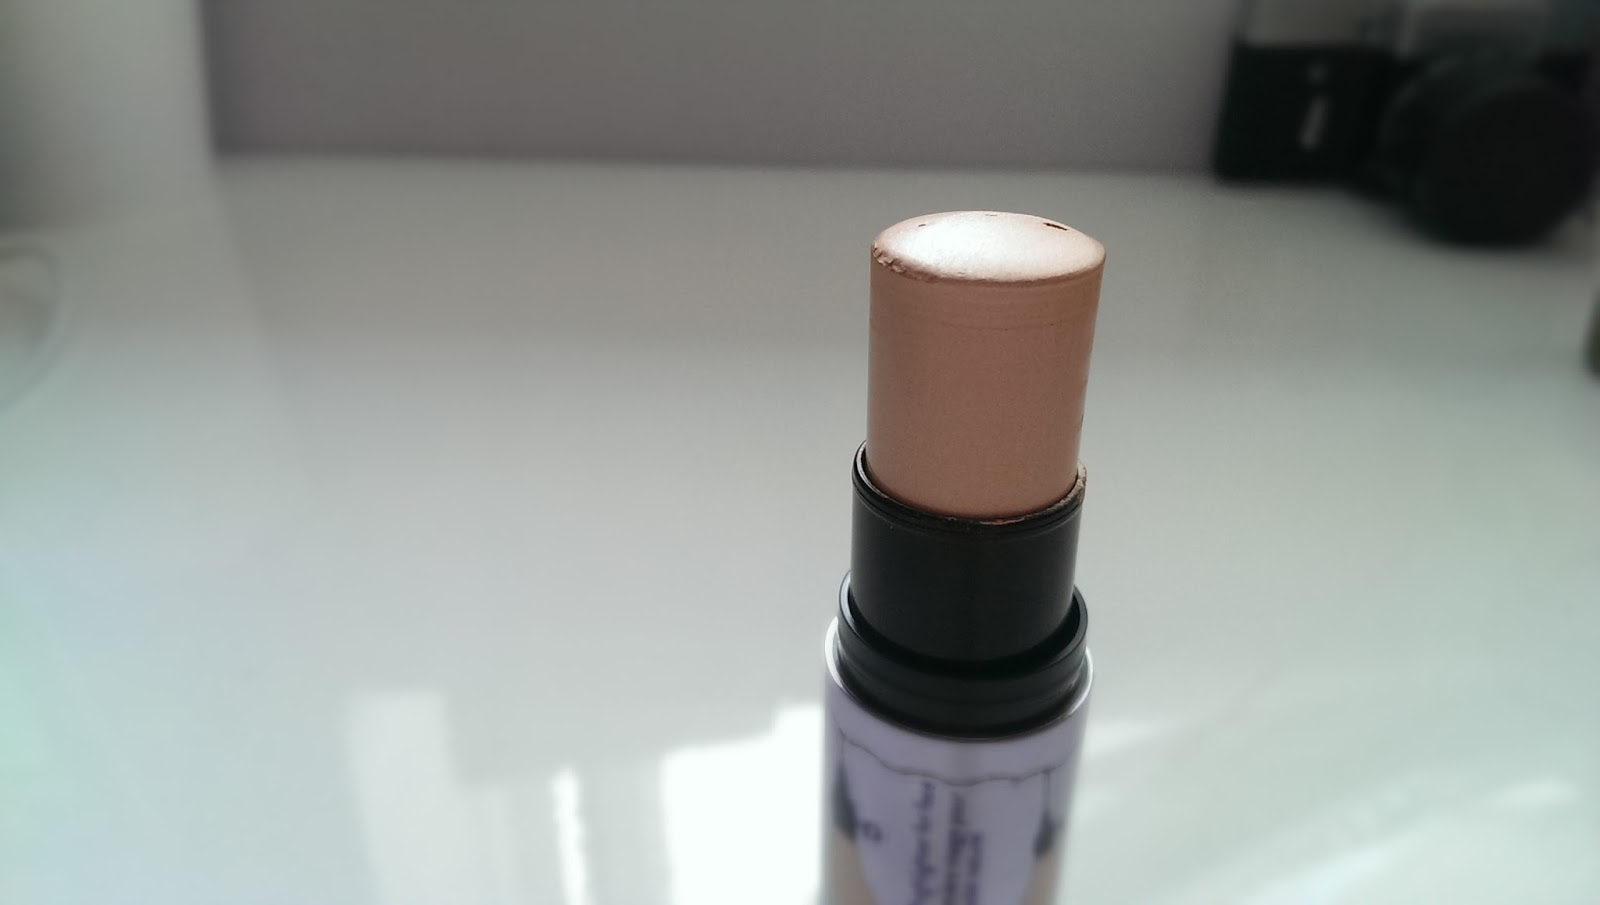 August 2013 Makeup Pixi3 Lock It Cushion Lip Pen 10 Nudi Beige Watts Up Fully Extended To Show How Much Product There Is